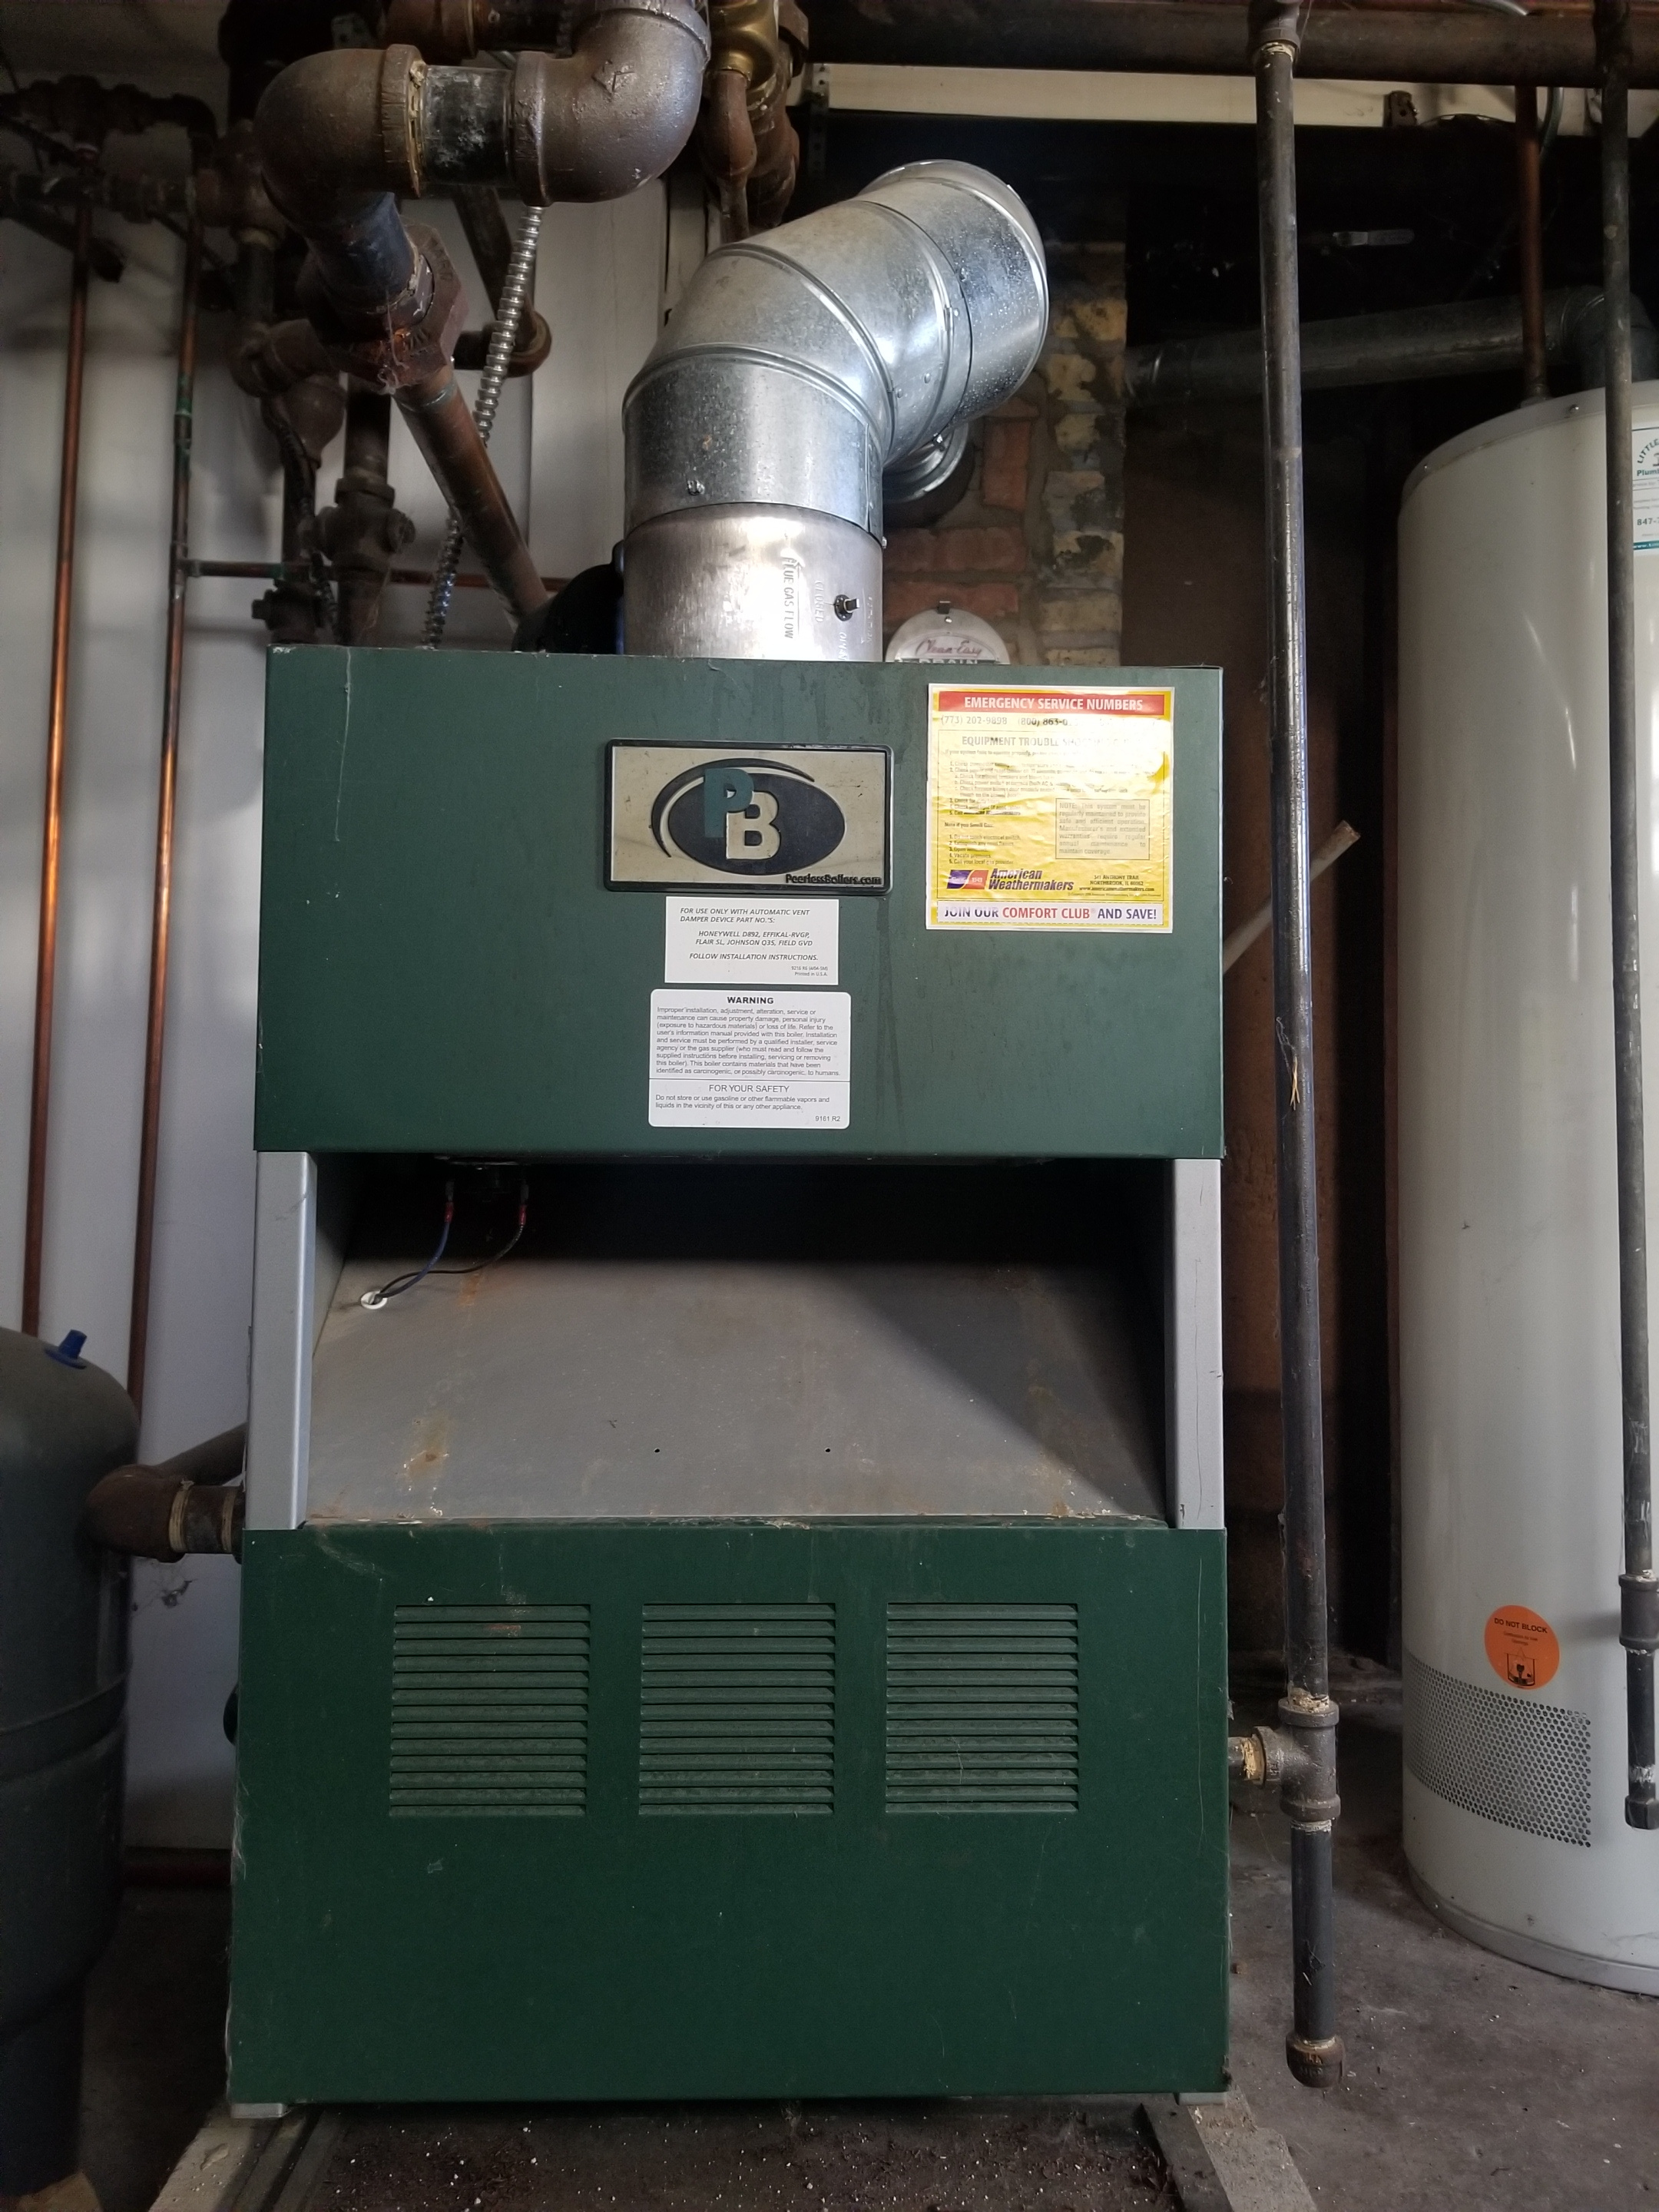 Repaired the Peerless boiler and made adjustments to improve the overall efficiency and life expectancy of the equipment